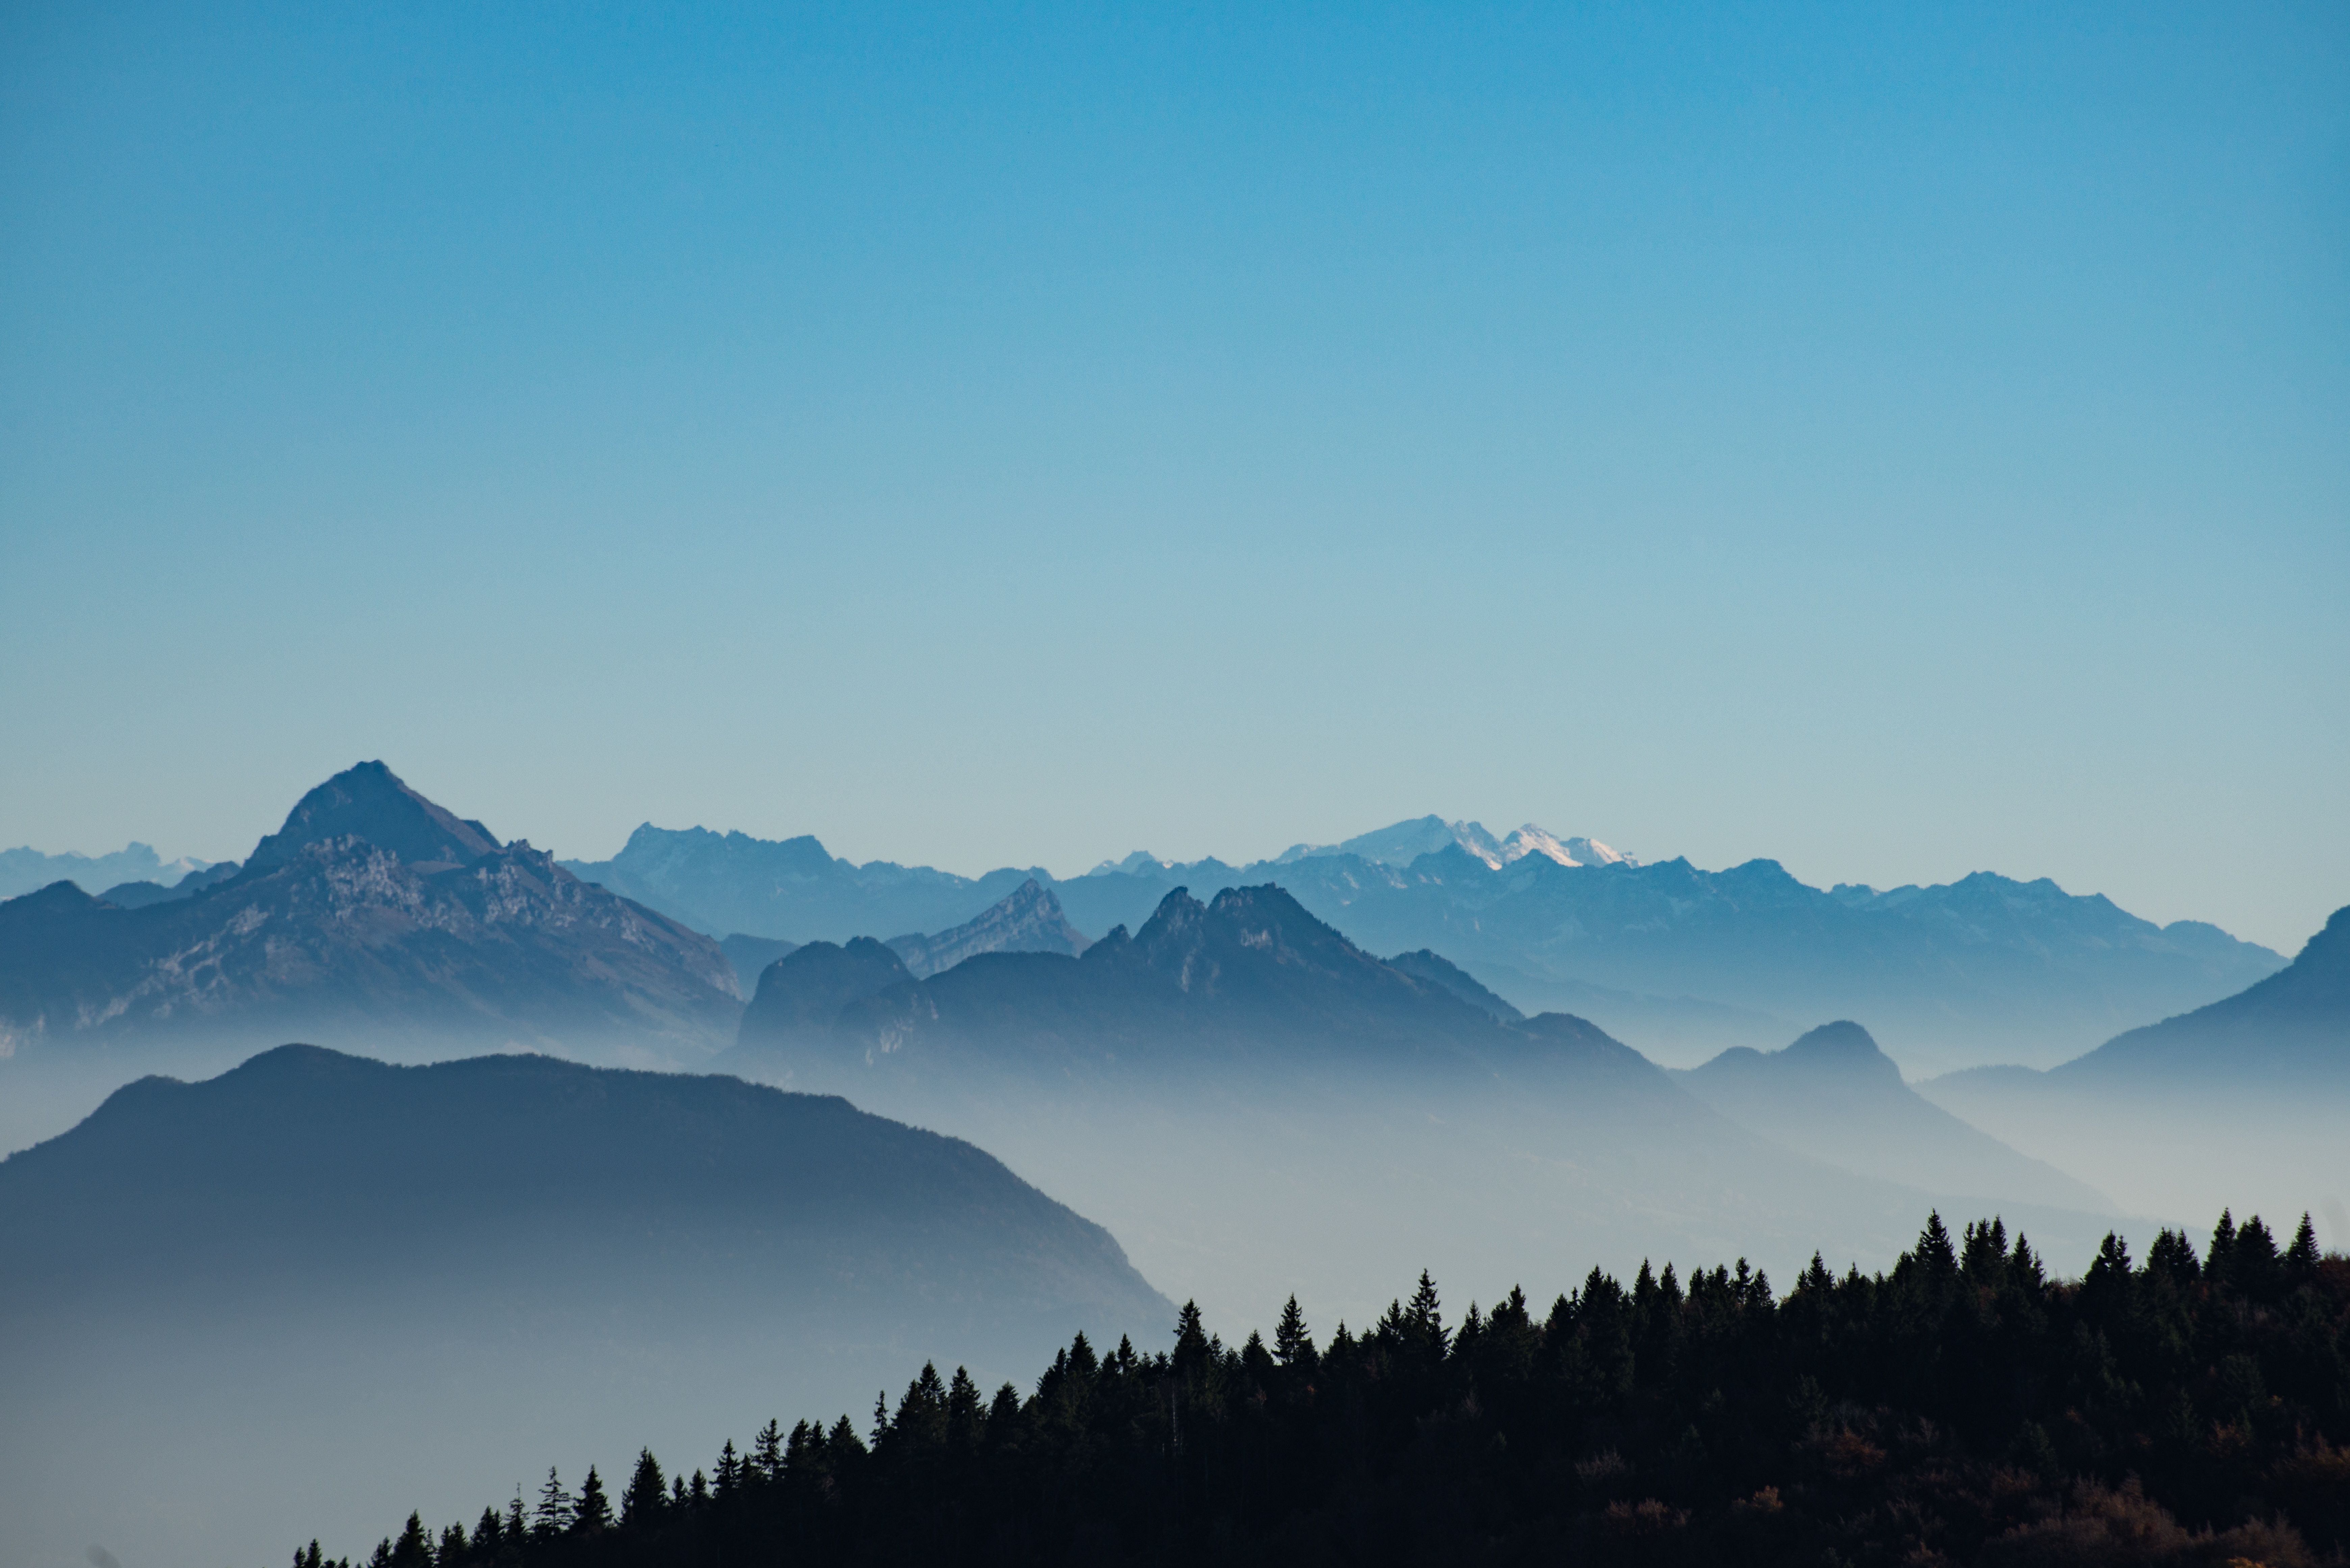 Hd Wallpaper A Mountain Range And Forest Against A Blue Sky In Saleve France Sunrise Mountain Fo Mountain Pictures Nature Photography Outdoor Pictures Sunrise morning fog mountain range dawn